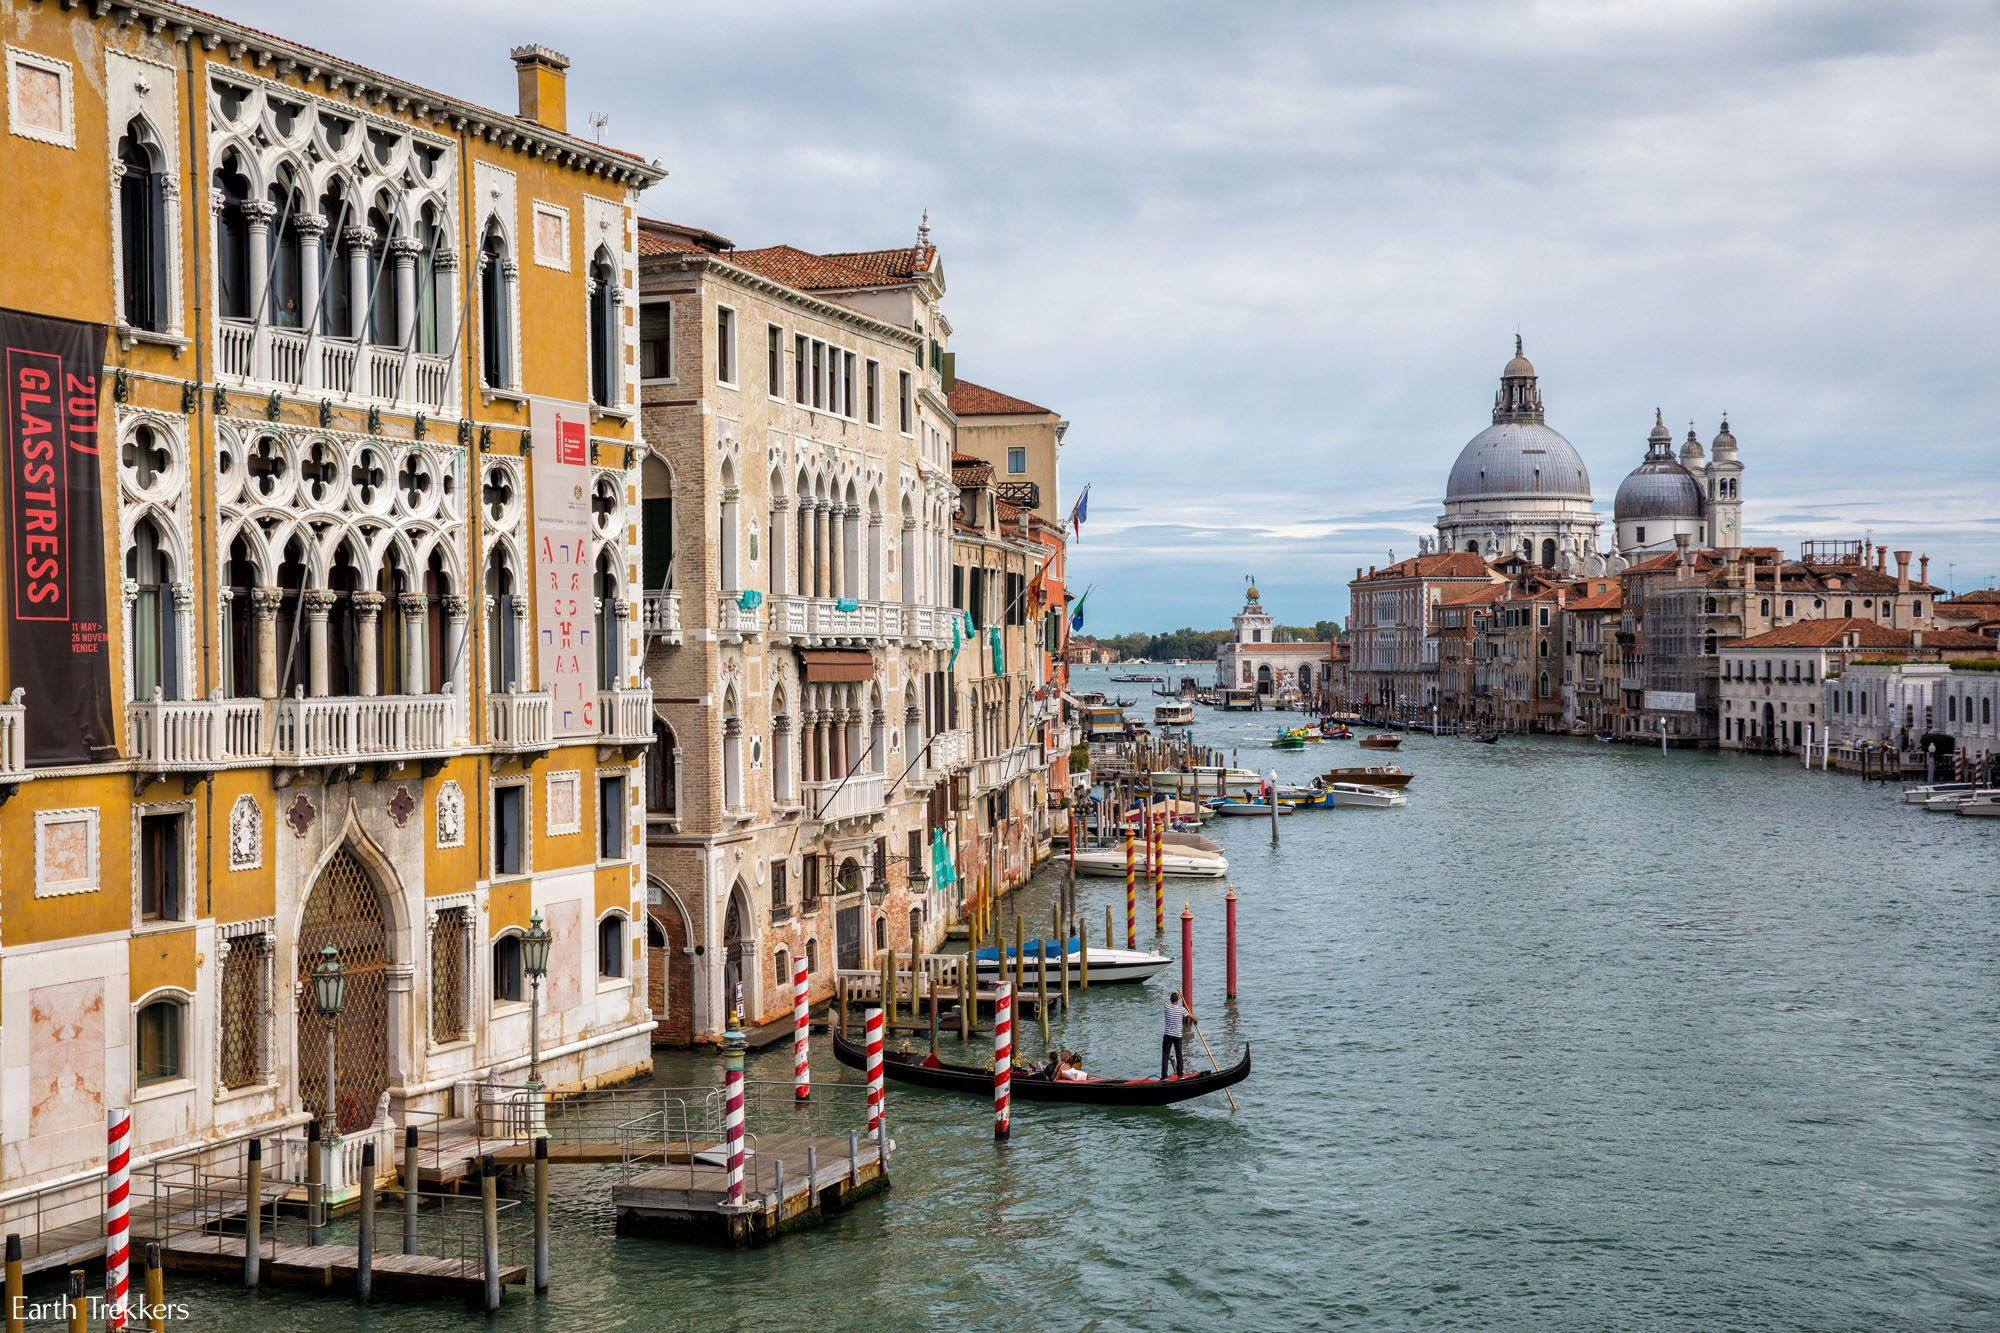 20 Photos That Will Make You Want to Visit Venice Italy ...